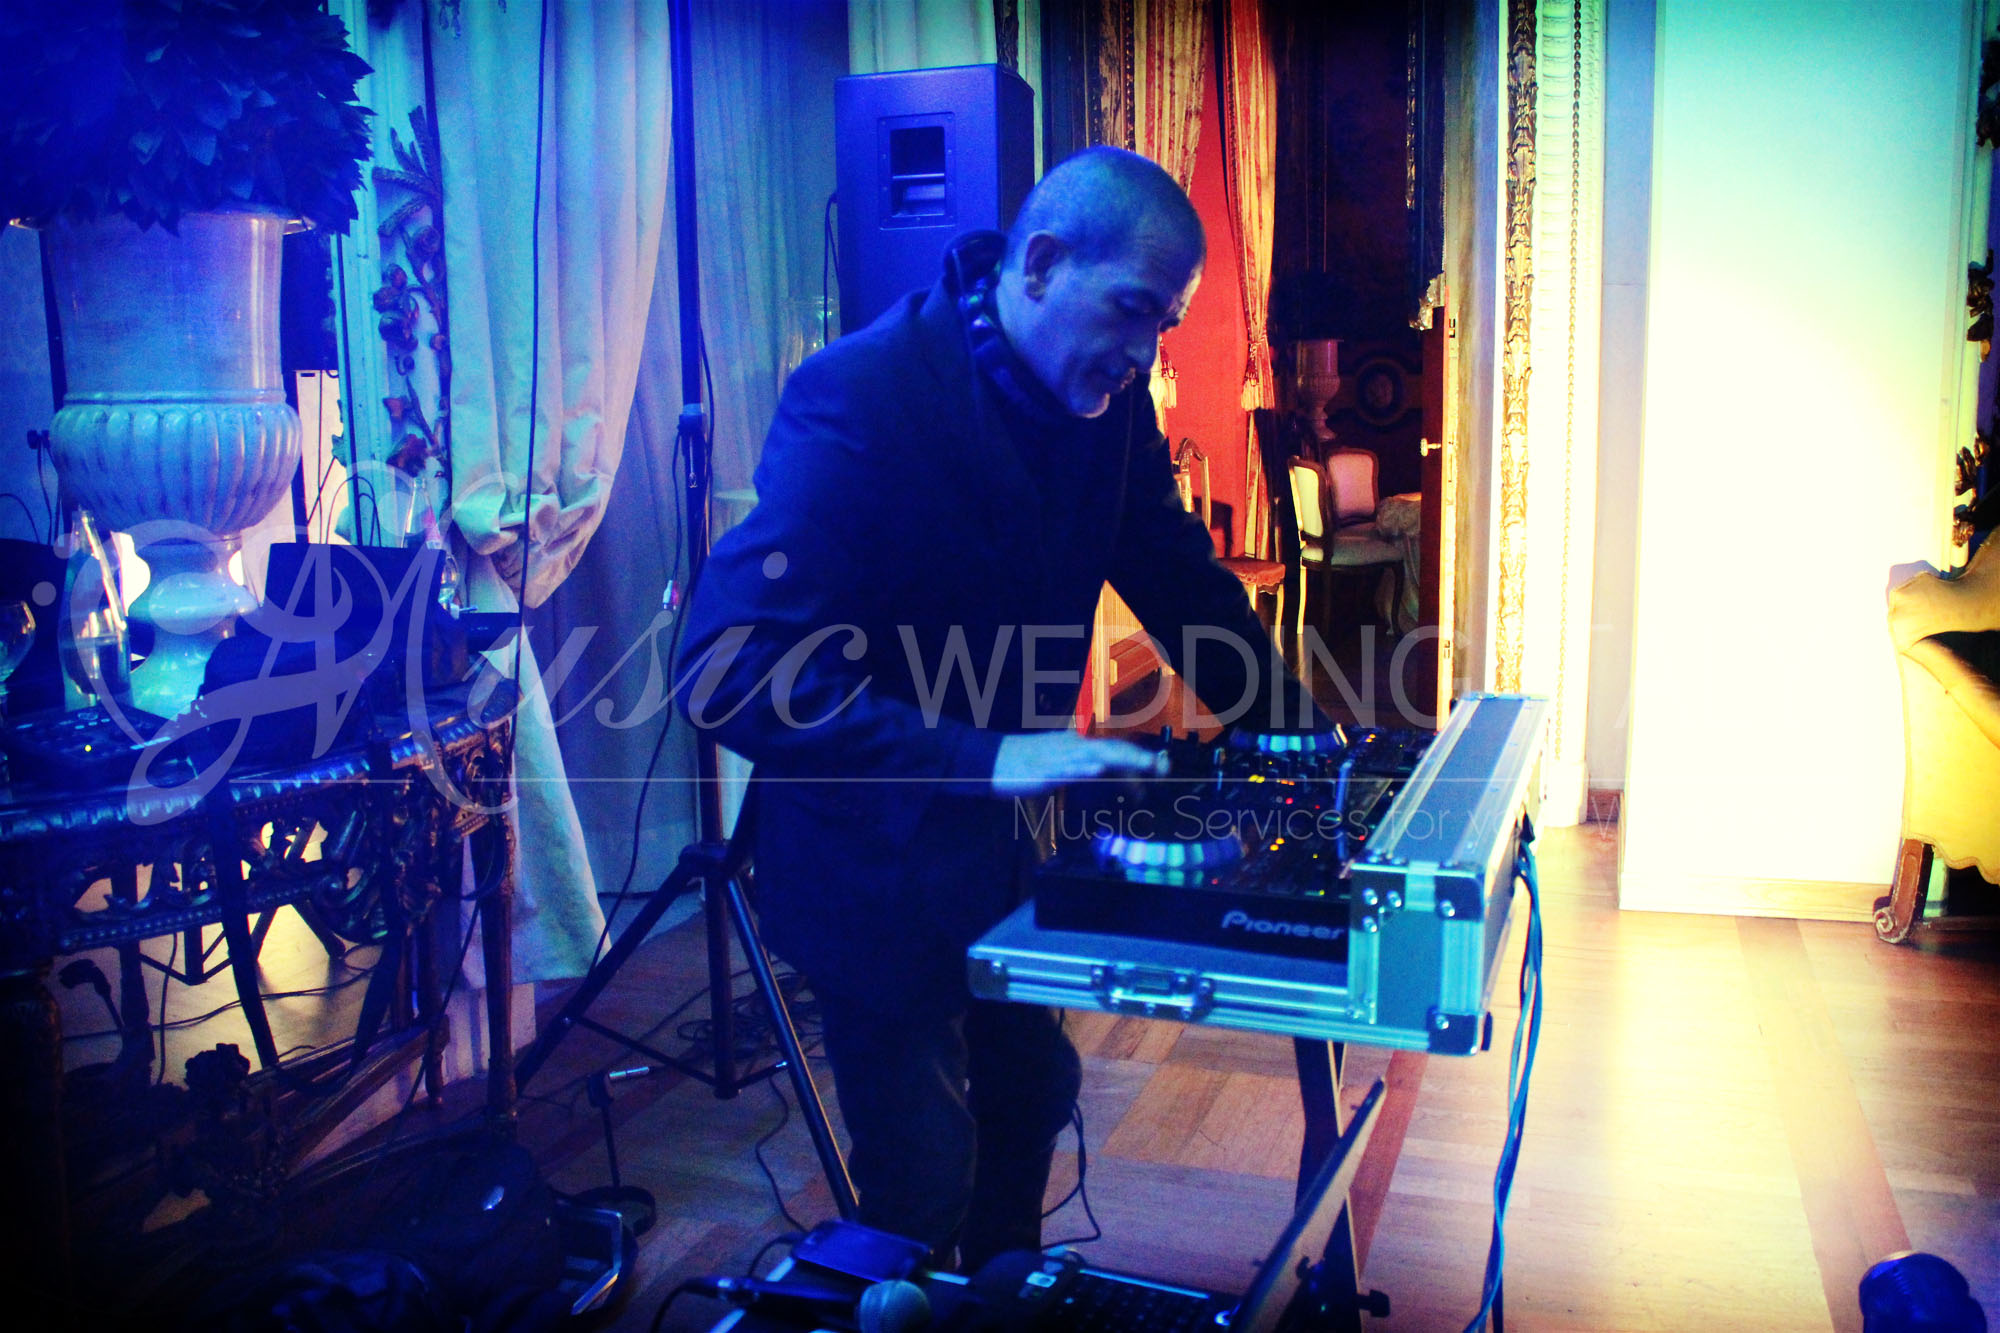 party dj set, wedding dj Roma Italia